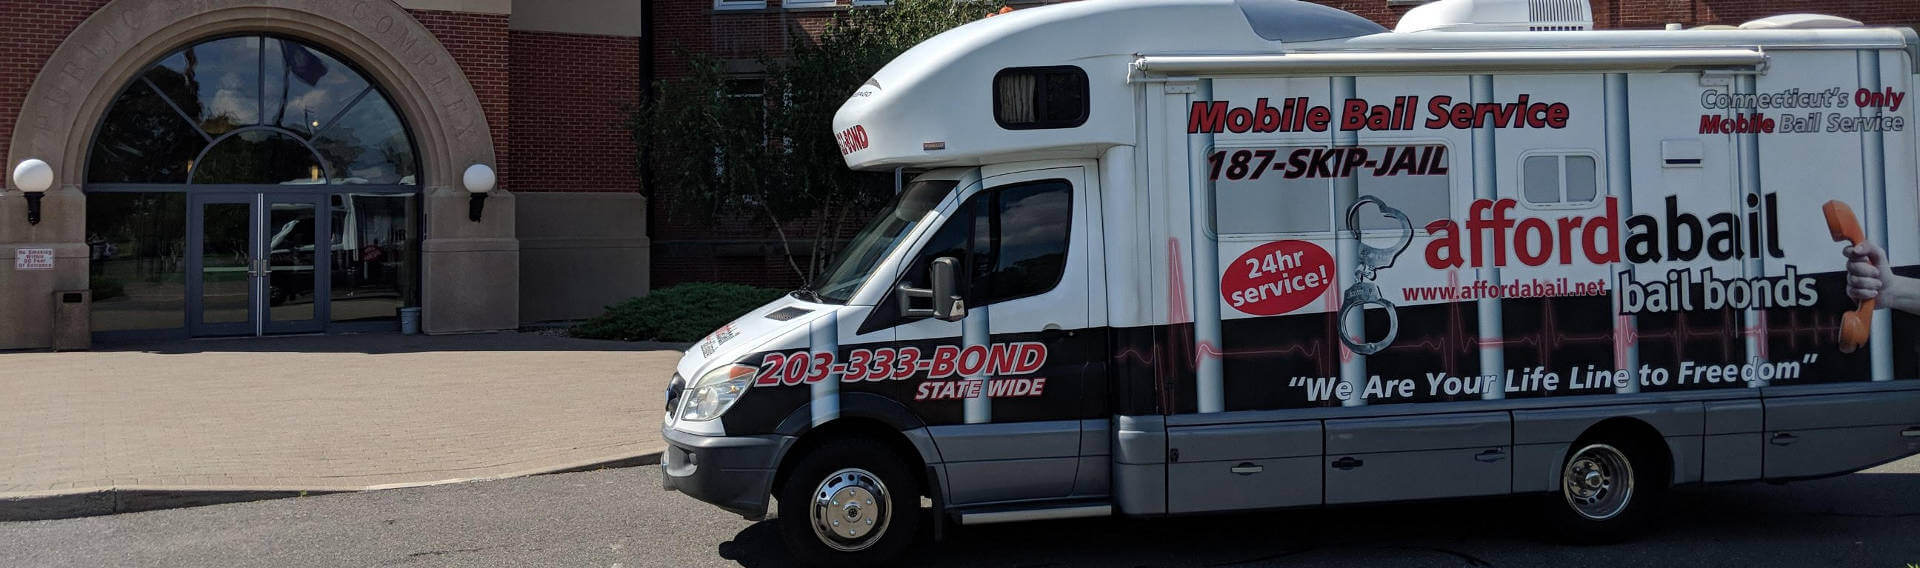 Mobile bail bonds service in East Hartford, CT